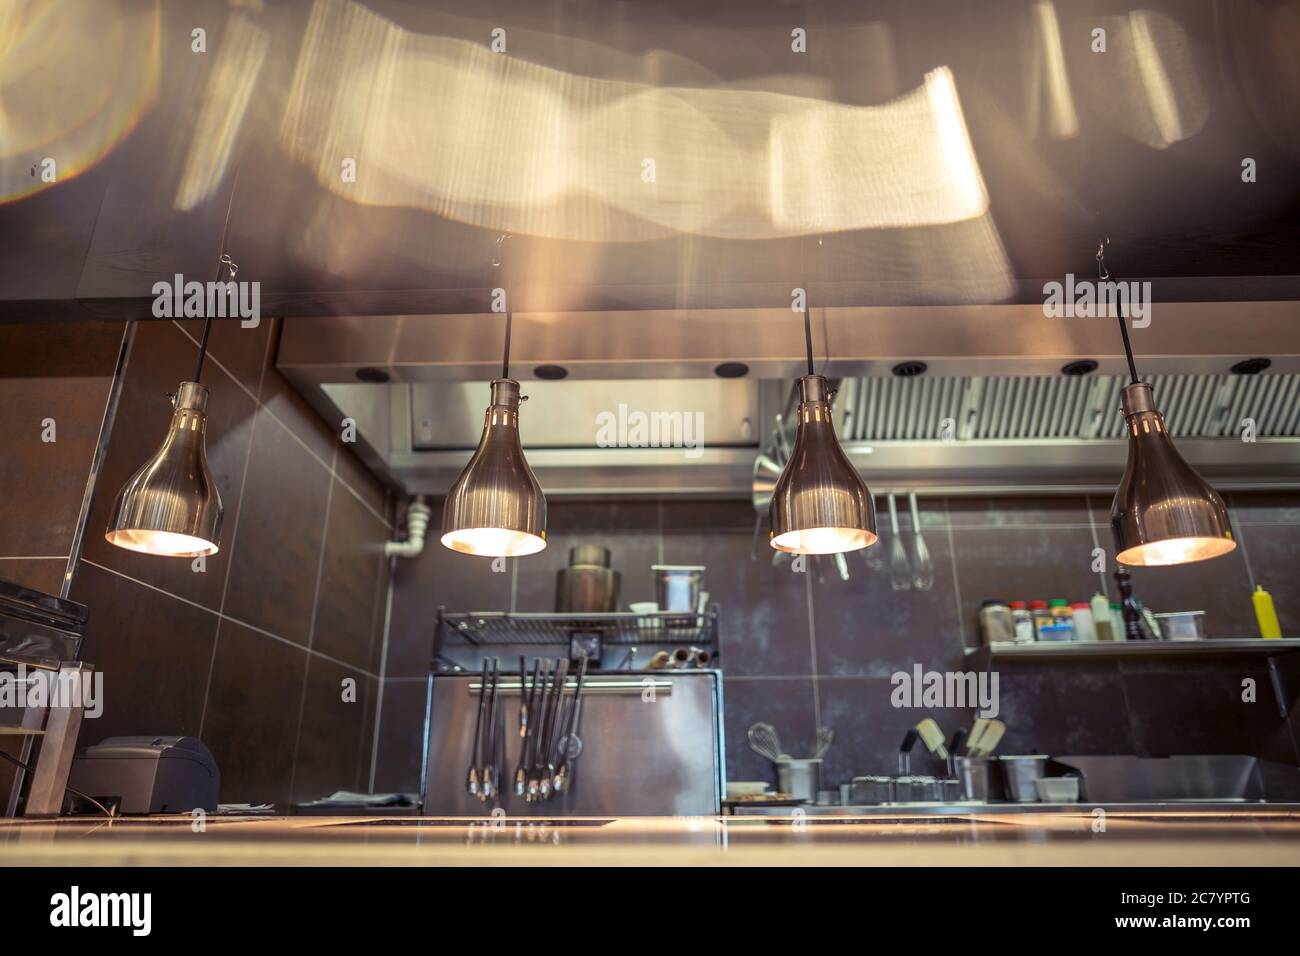 Restaurant Kitchen Interior Bar Counter Made Of Natural Stone Fences Off The Open Kitchen And Hall For Visitors With Tables And Chairs In The Backg Stock Photo Alamy